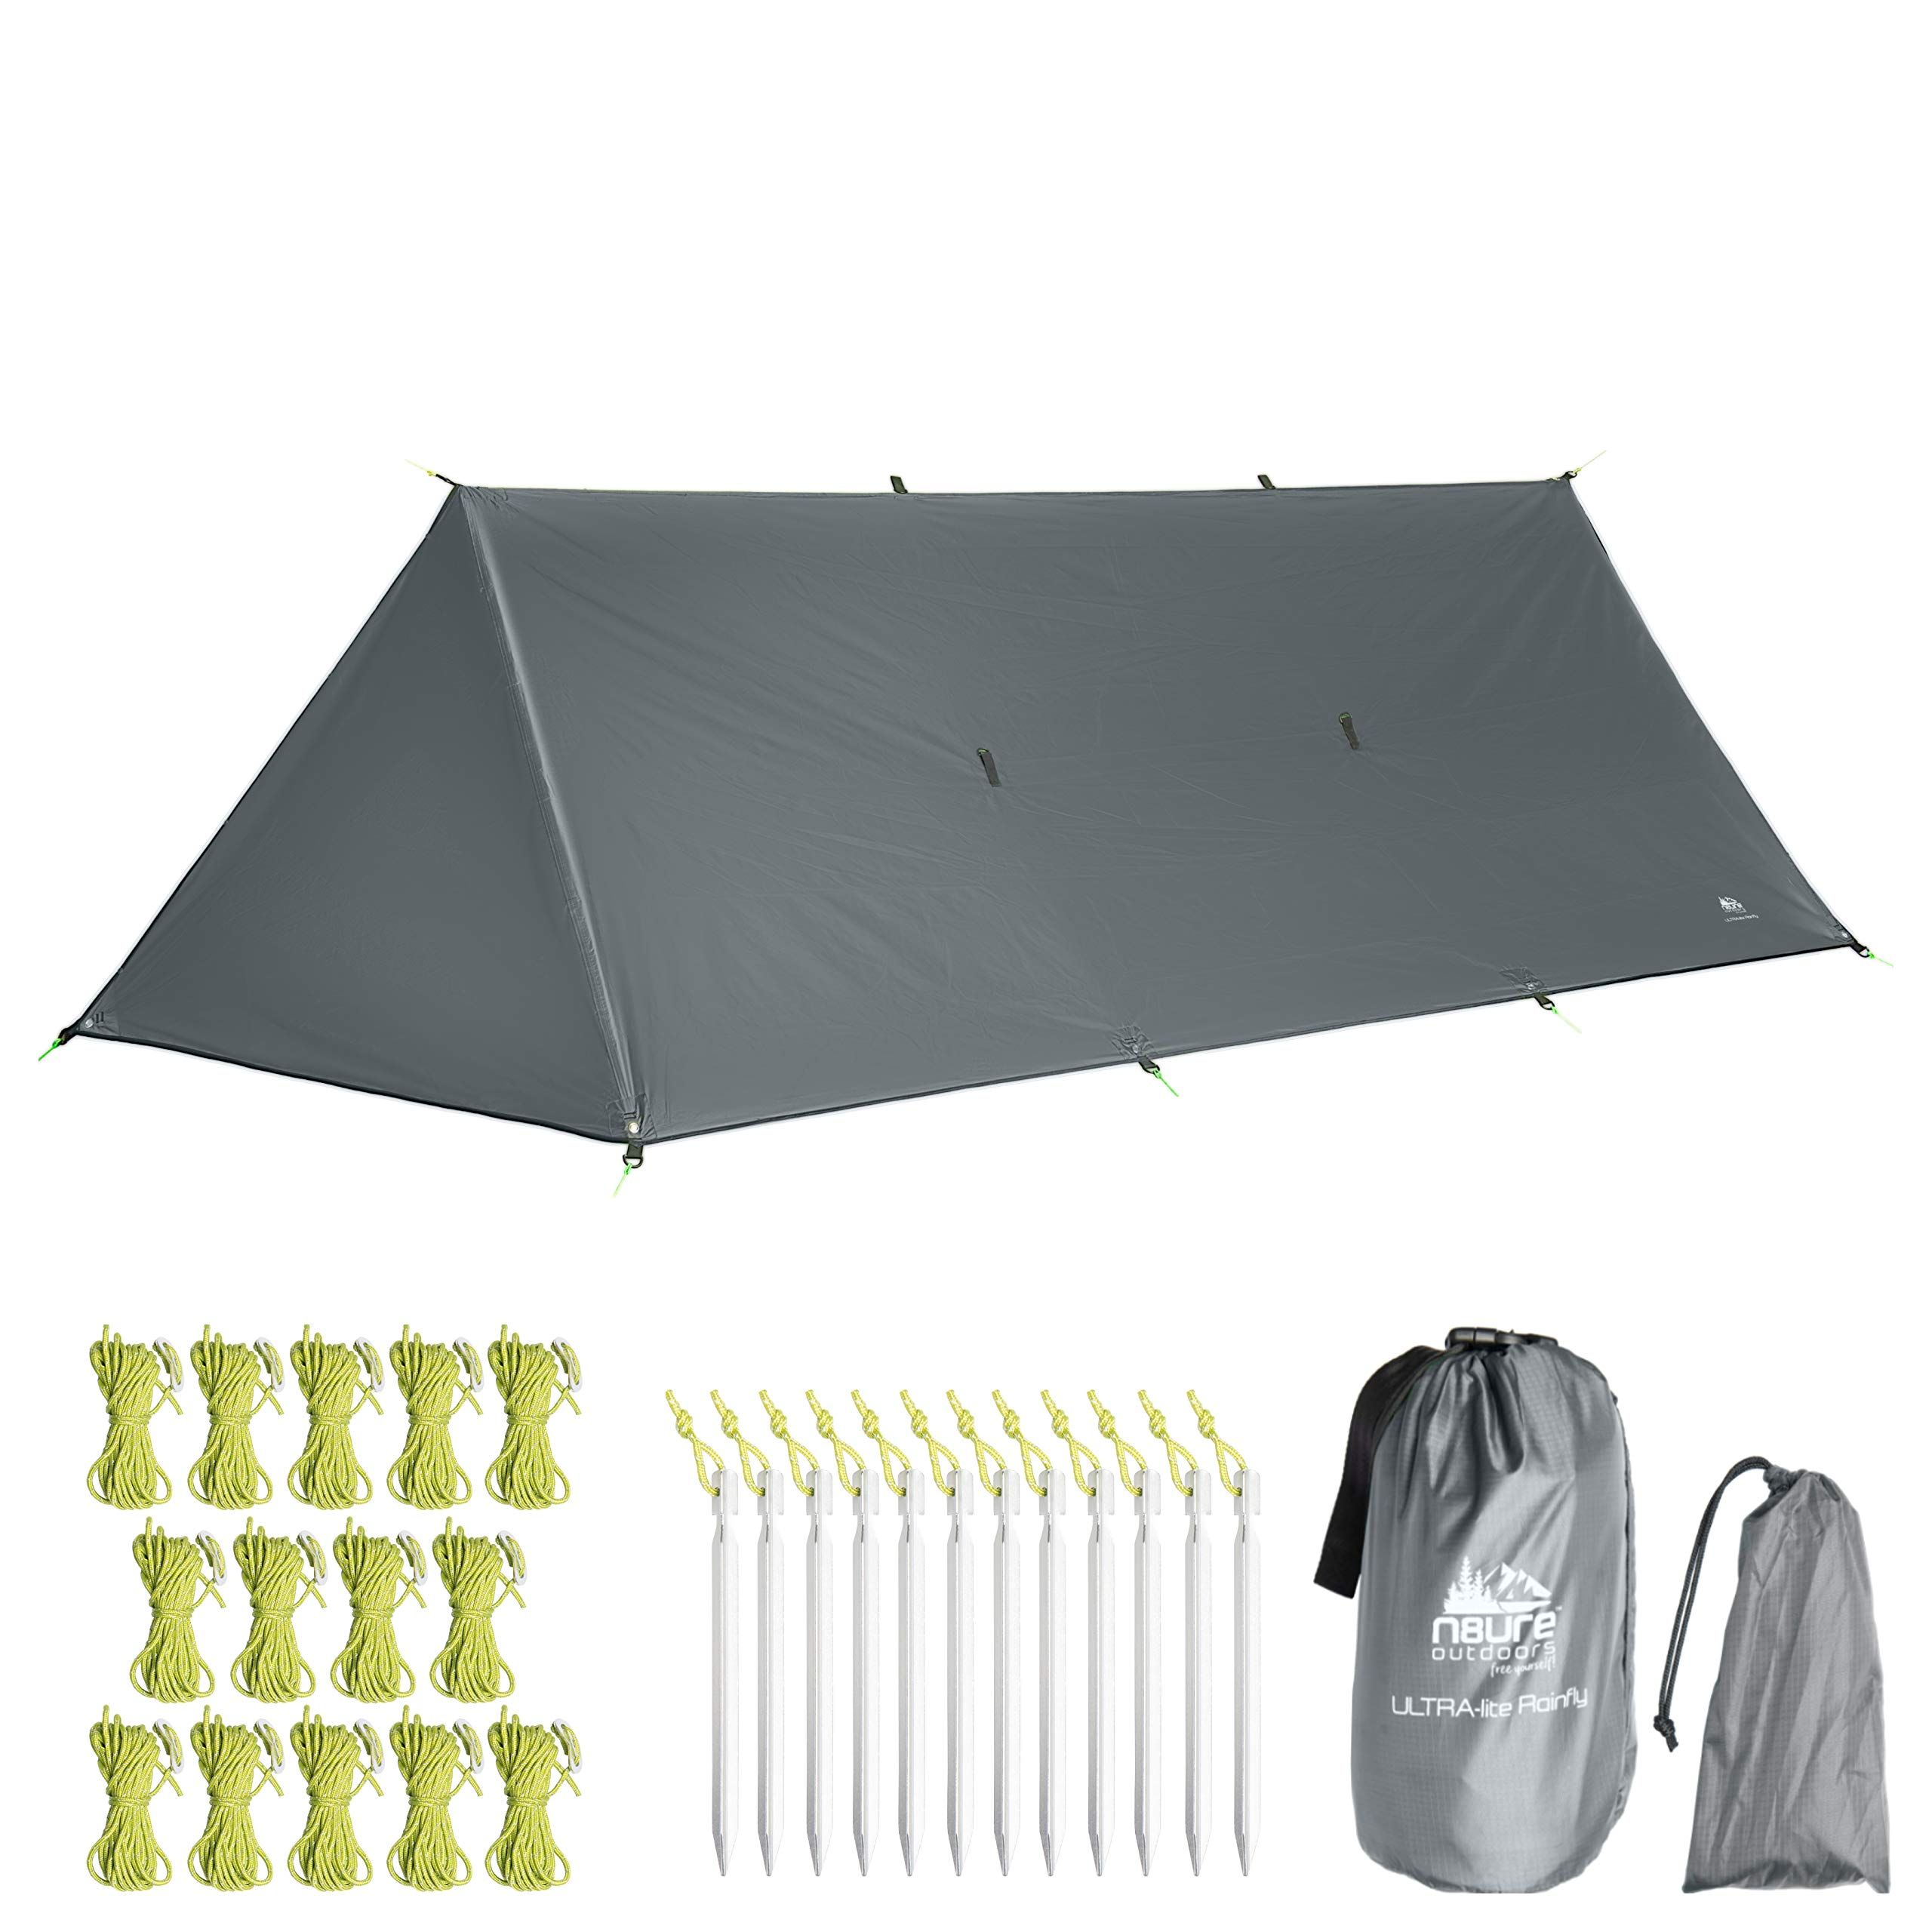 Premium Rainfly Tarp 10x10x16' Waterproof Ultralight Ripstop Nylon Hammock Camping Shelter with Doors Tent Canopy 20 x Tie-Outs Backpack Hike Bushcraft Survival Gear Includes Stakes Ropes (Gray) by N8URE Outdoors